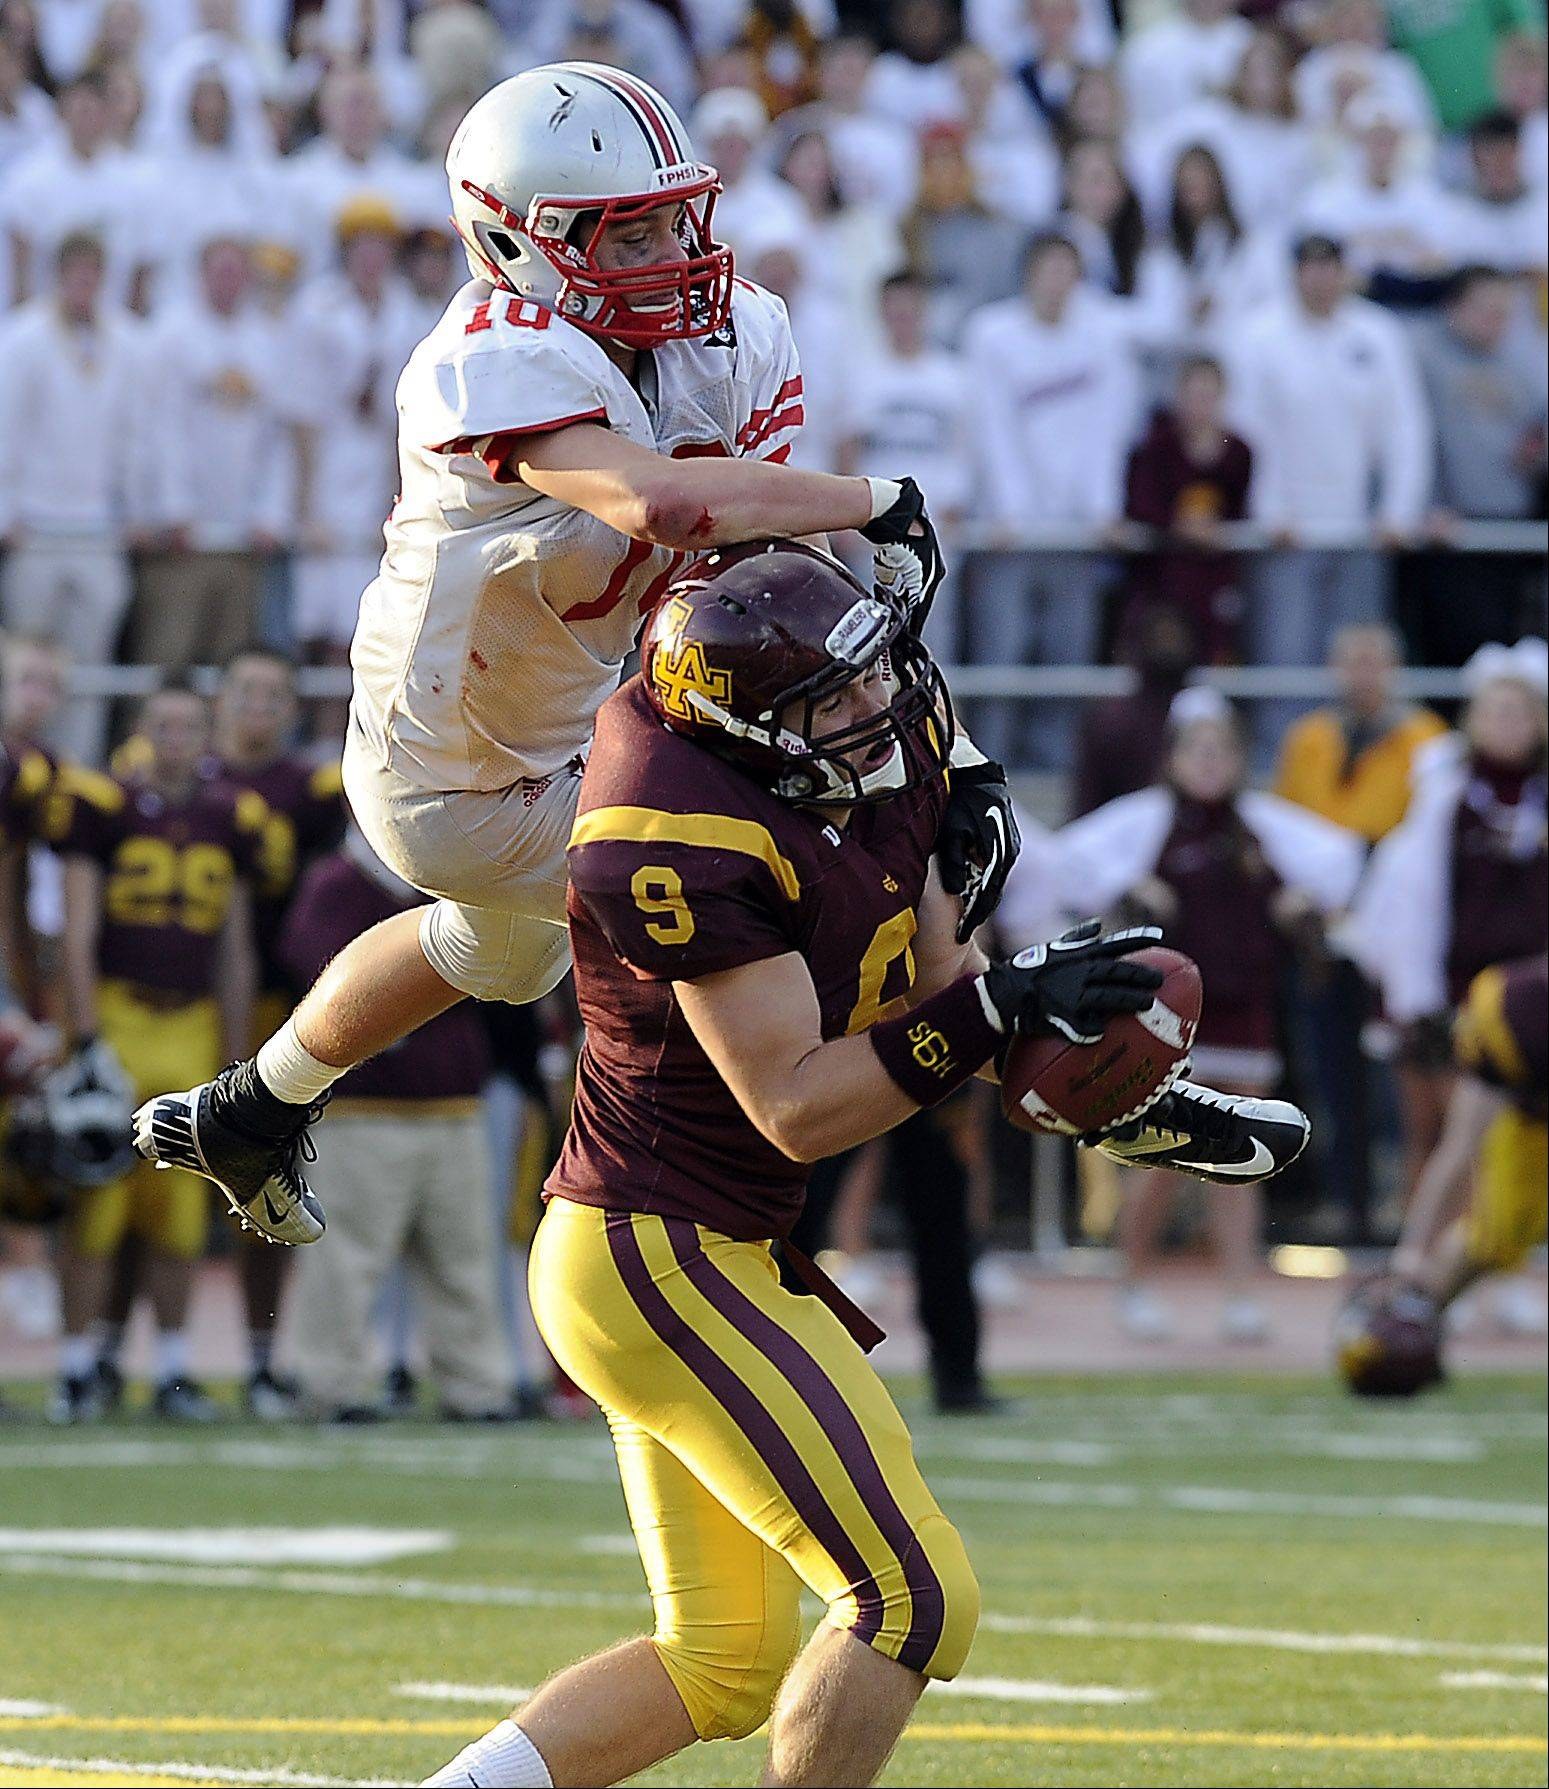 Palatine's Cam Kuksa loses the ball on a fourth quarter interception by Loyola's Cody Sullivan.